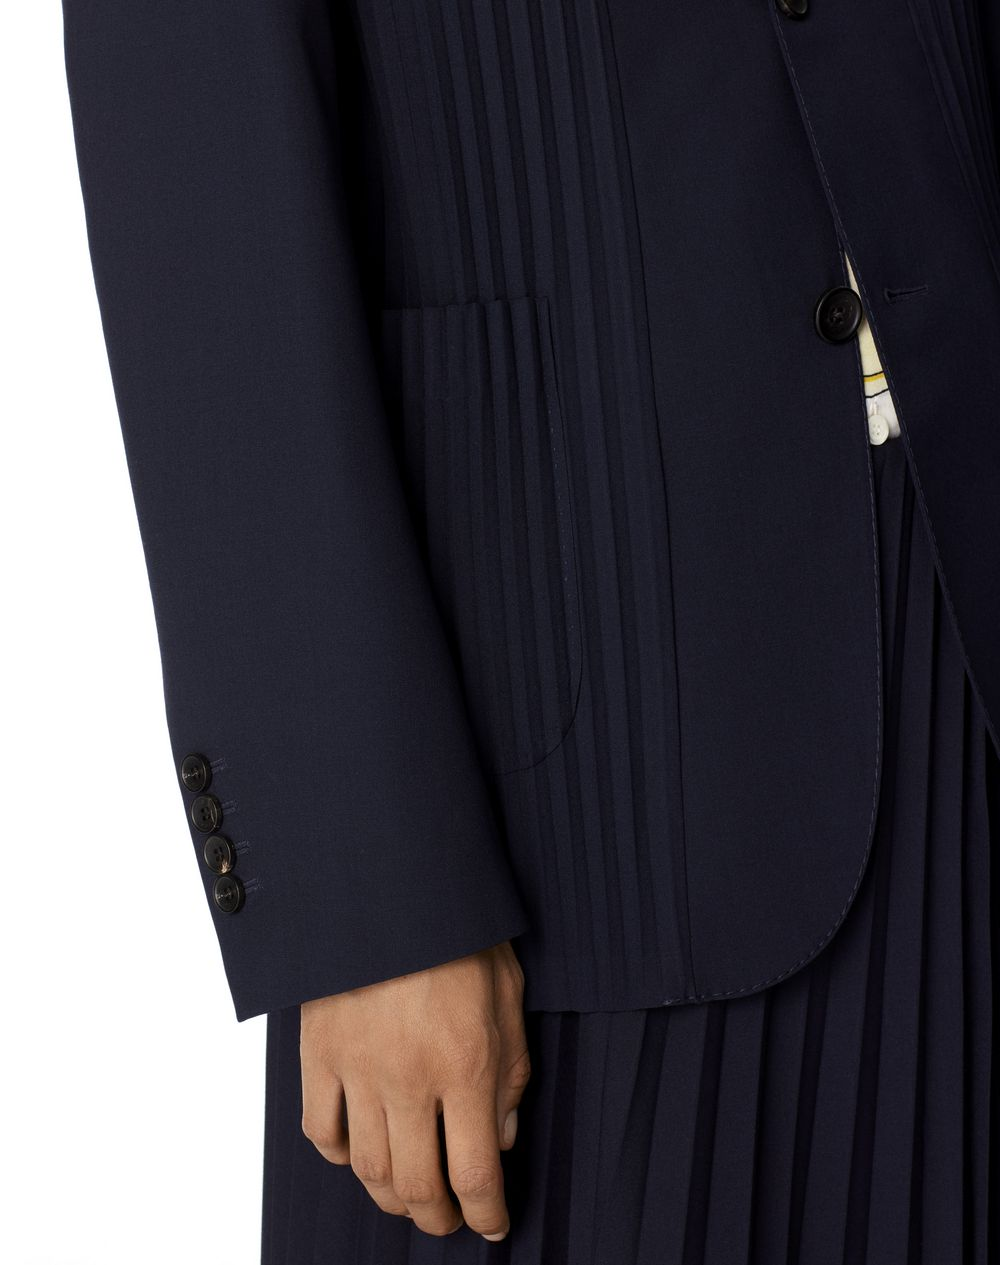 TAILORED JACKET WITH SUNBURST PLEATS - Lanvin